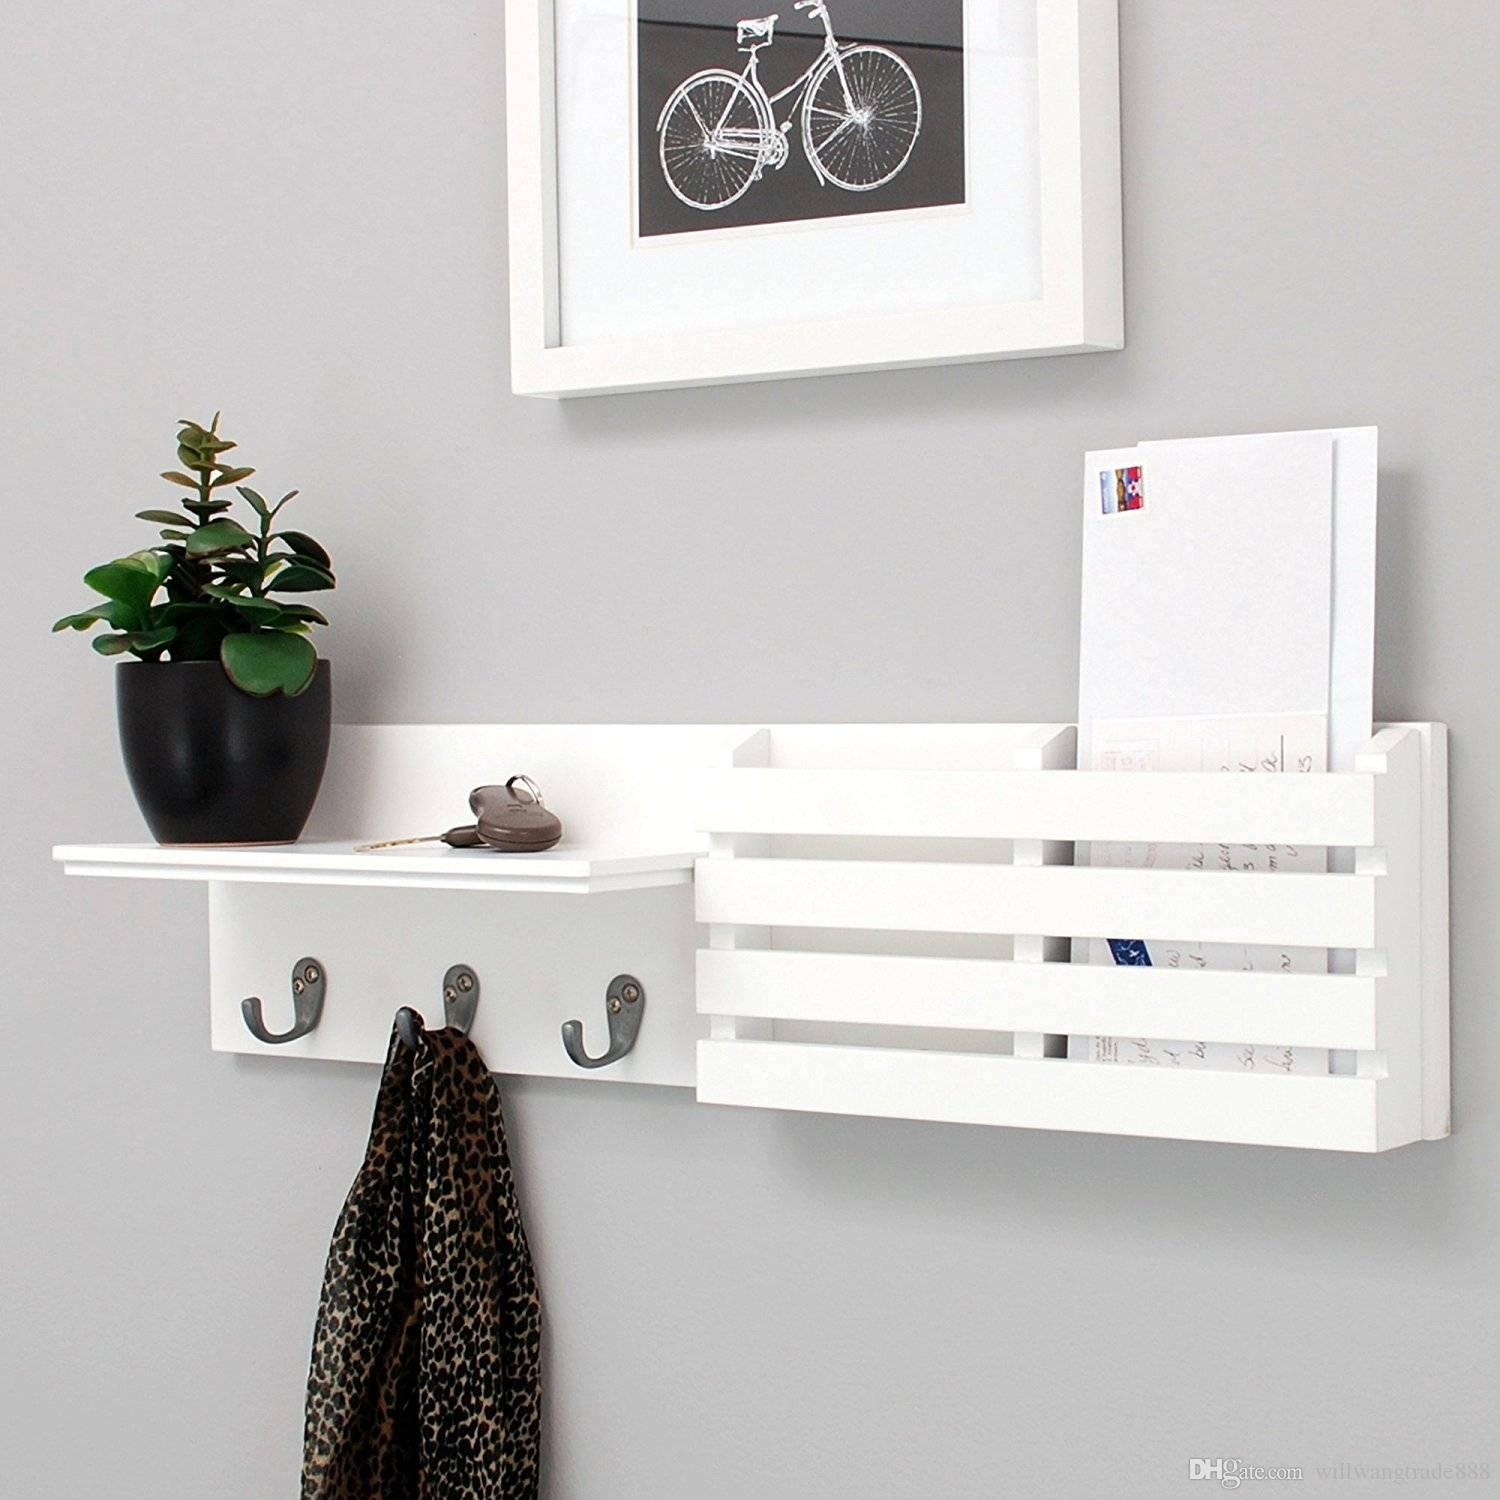 Wall Mounted Shelf And Mail Holder With 3 Hooks 24